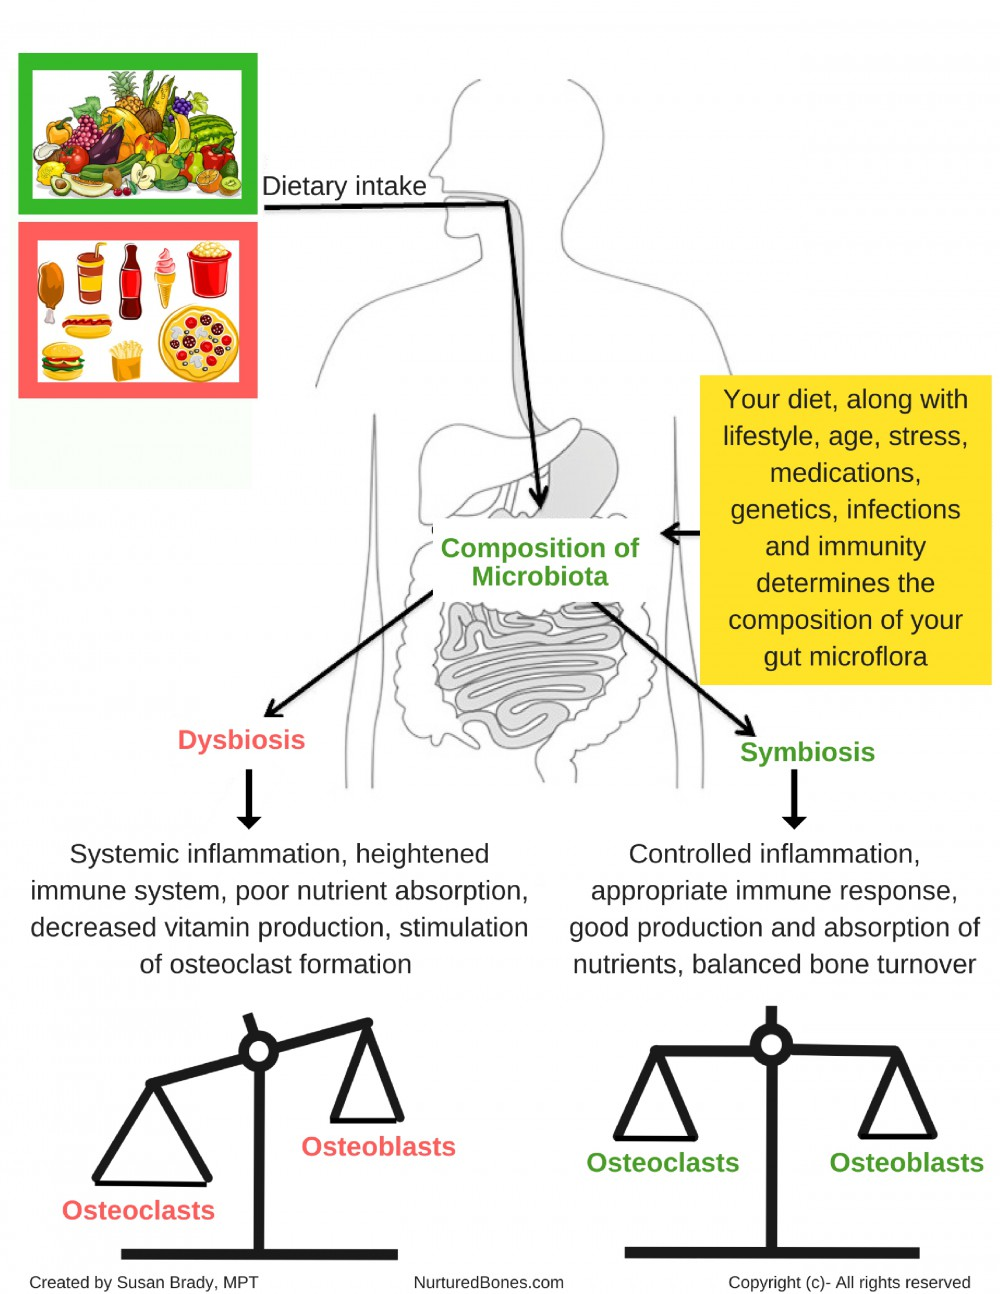 Your diet determines the composition of your microflora